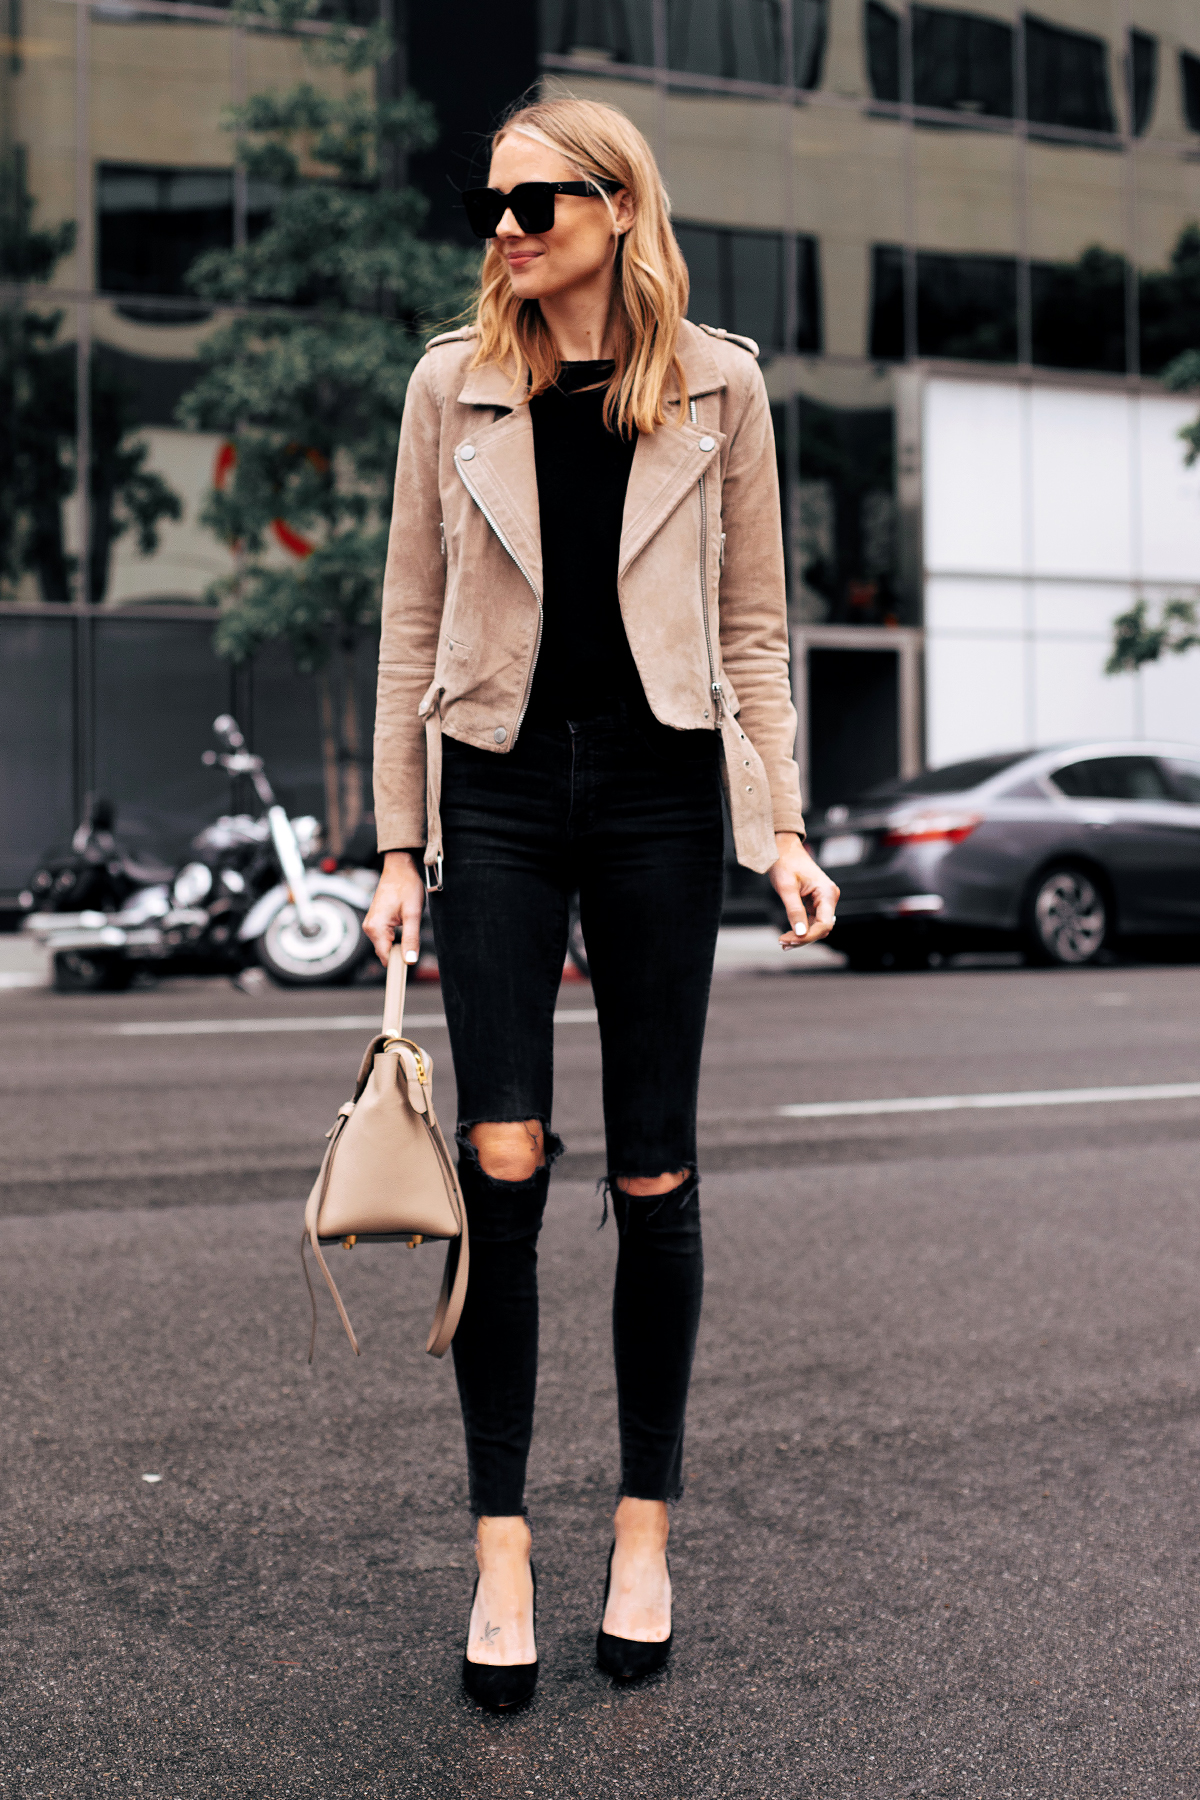 Fashion Jackson Capsule Wardrobe Wearing Blanknyc Tan Suede Moto Jacket Black Sweater Madewell Black Ripped Jeans Black Pumps